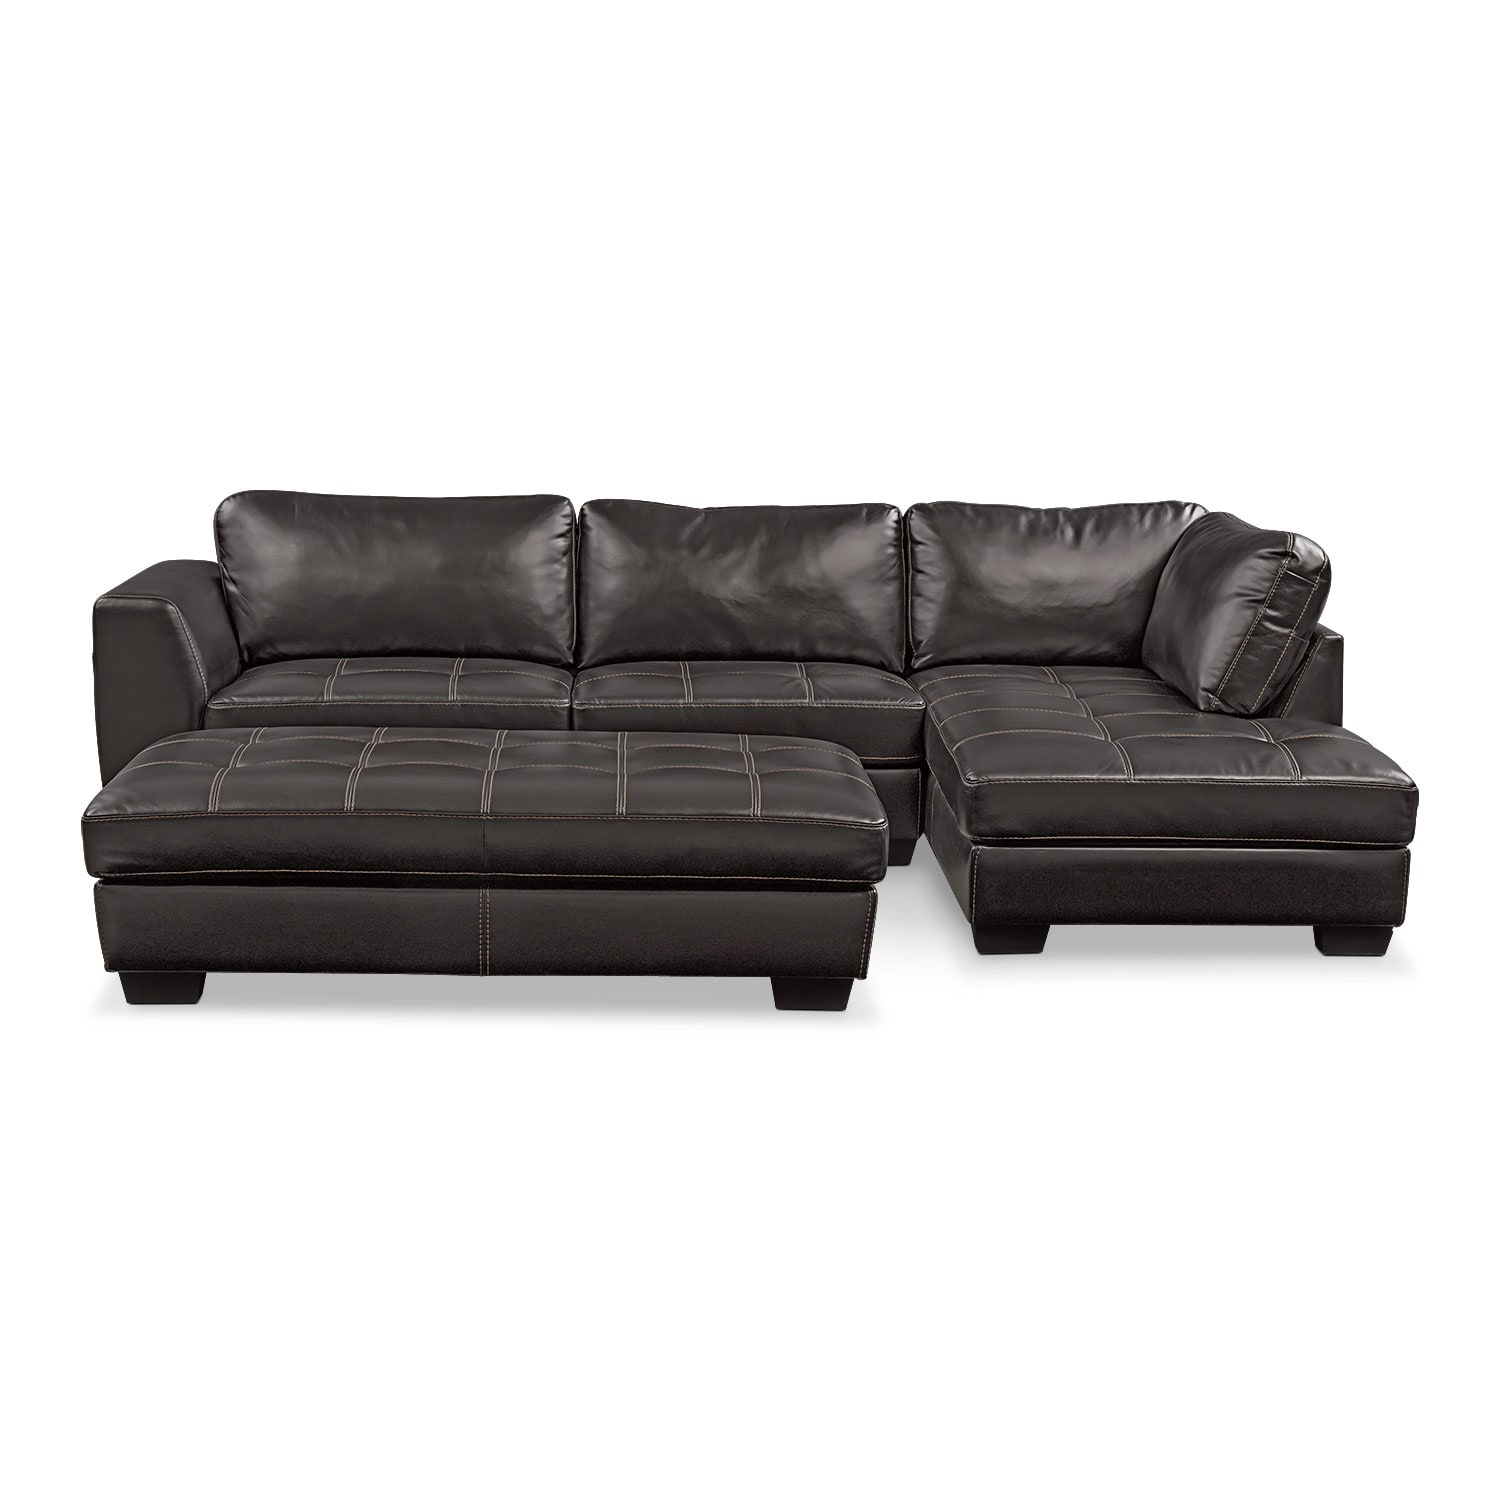 Santana 2 piece sectional with right facing chaise and for 2 piece sectional sofa with chaise